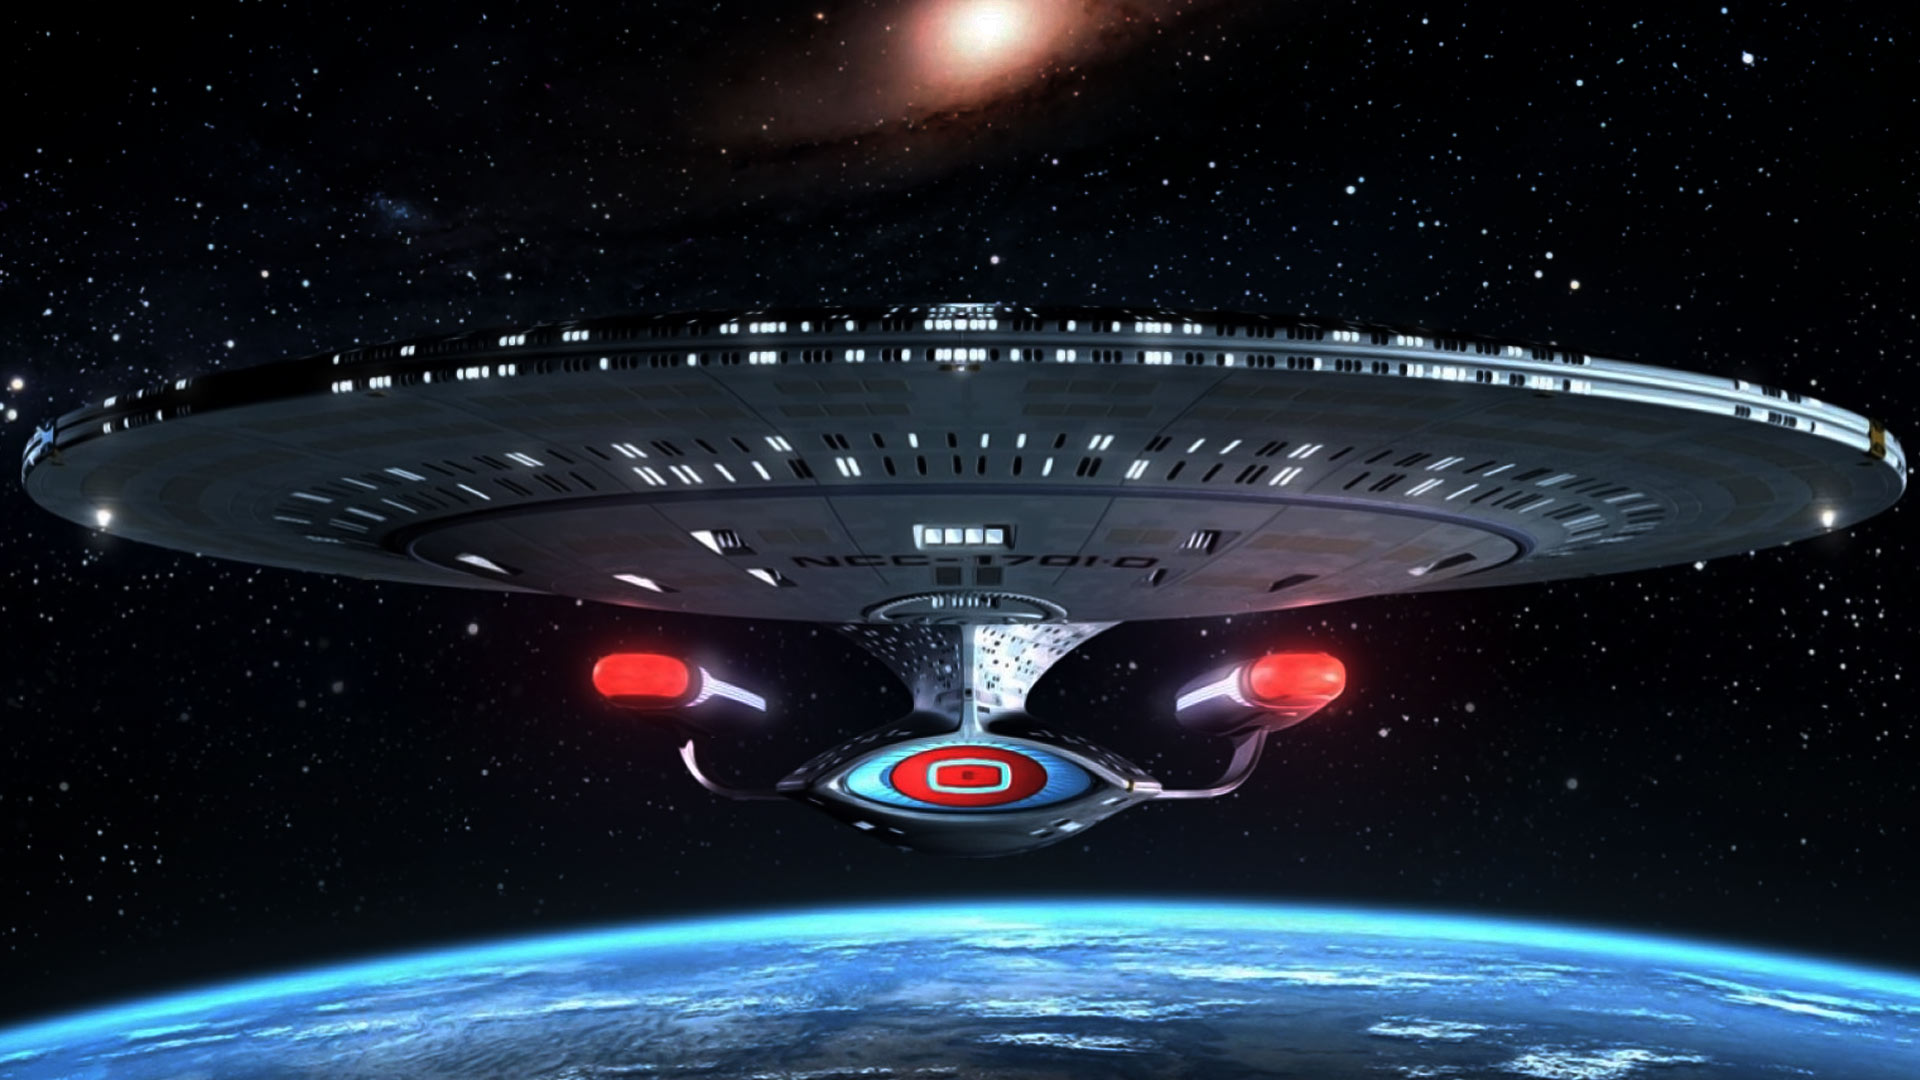 star trek wallpaper by - photo #38